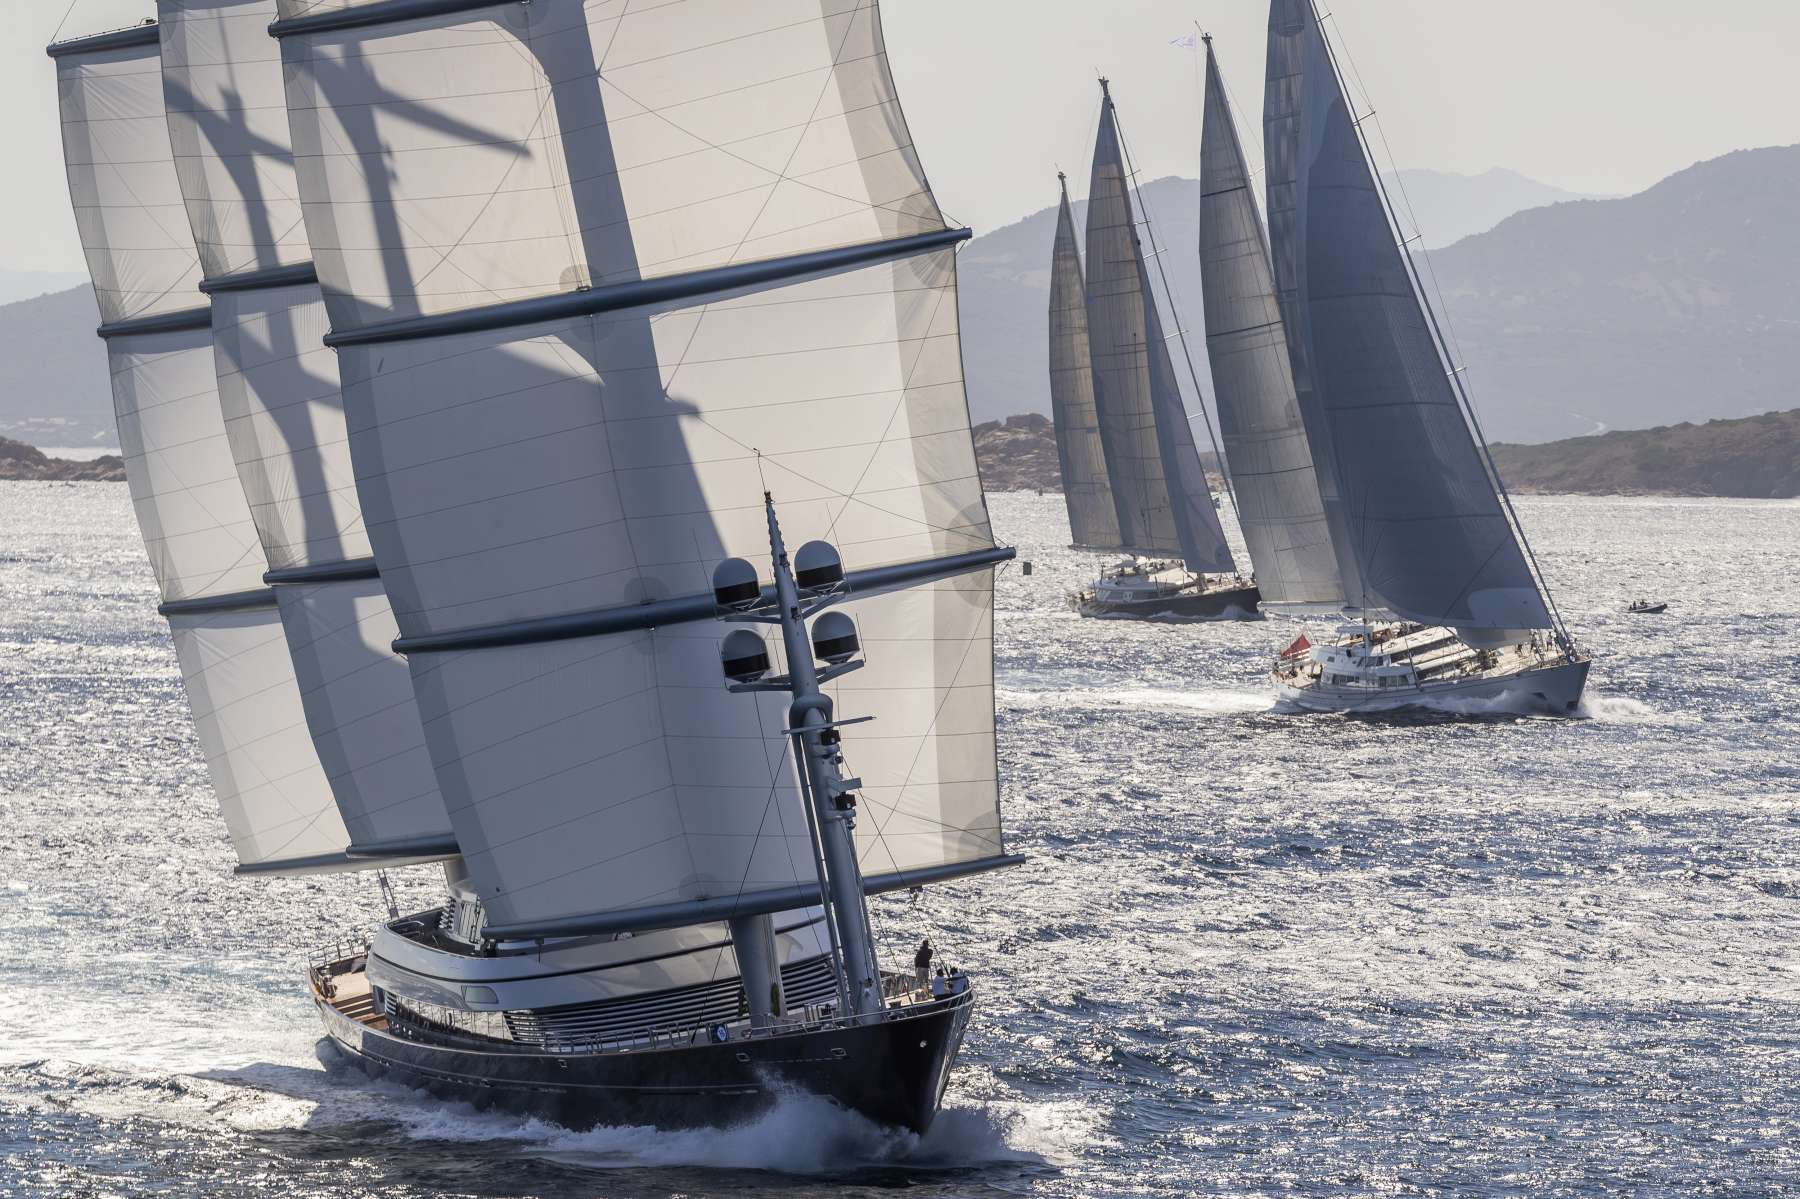 Maltese Falcon and Silencio triumph in seventh edition of Perini Navi Cup - NEWS - Yacht Club Costa Smeralda